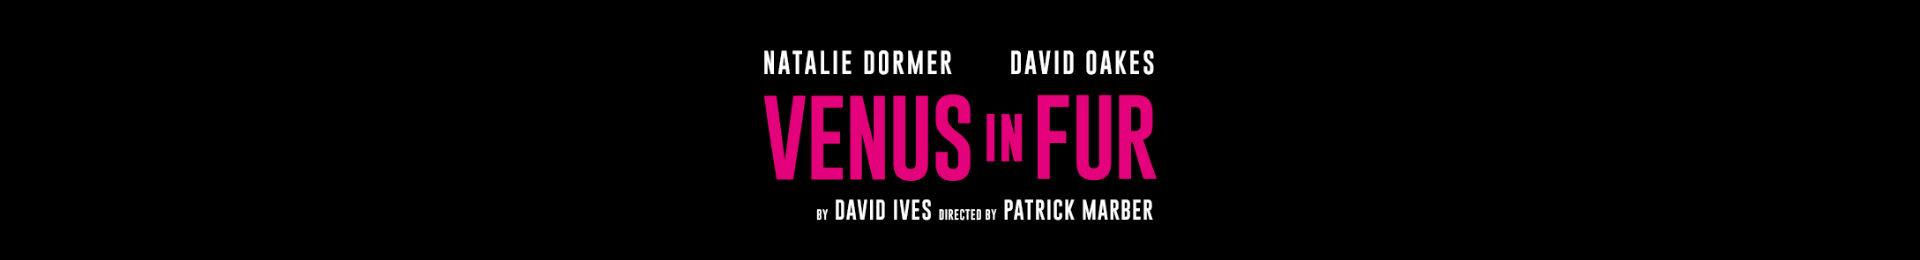 Venus in Fur in 250 words